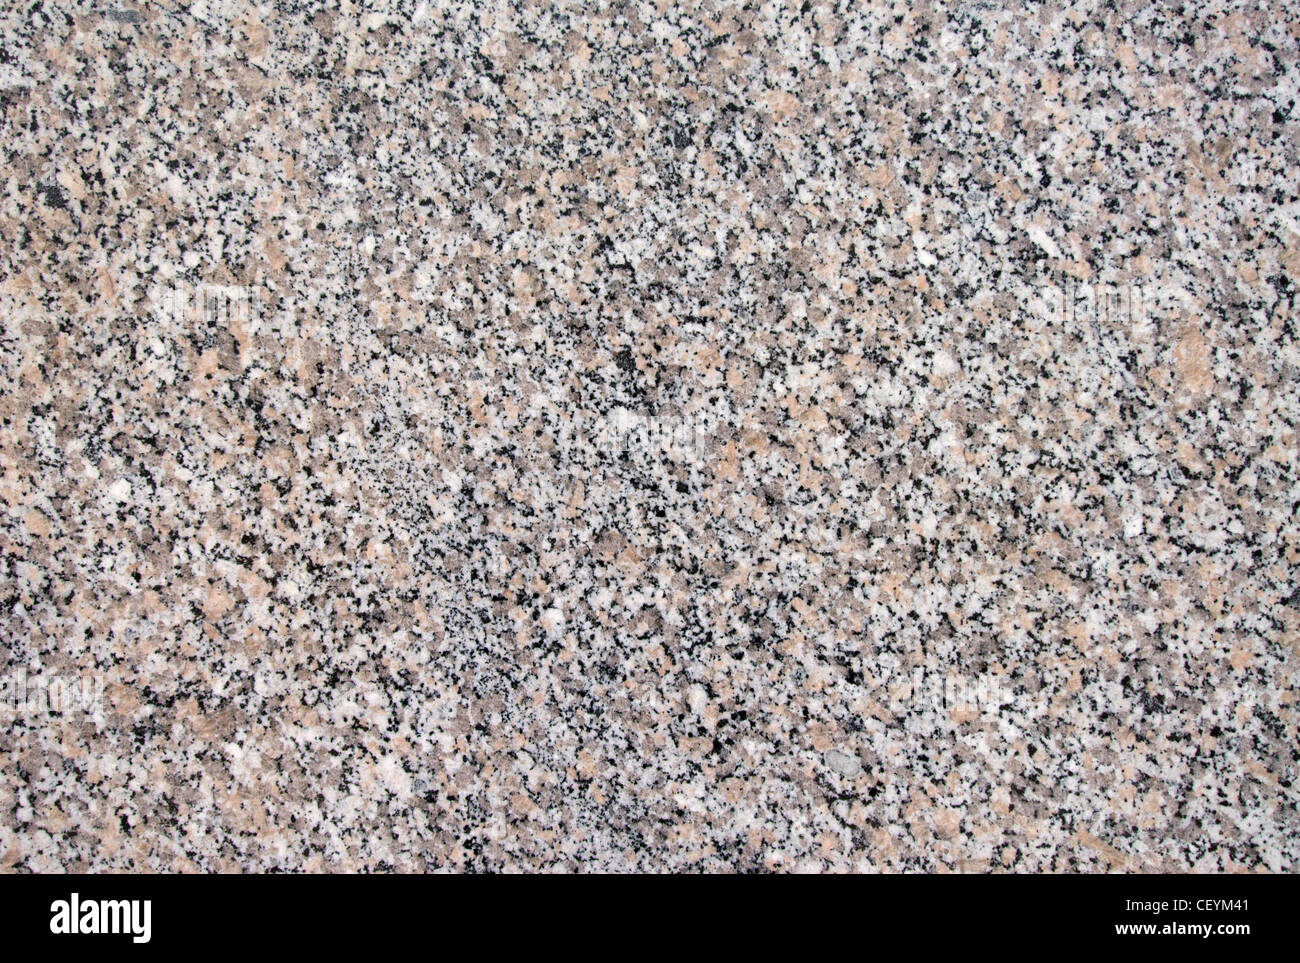 close up granite marble surface patterned background Stock Photo